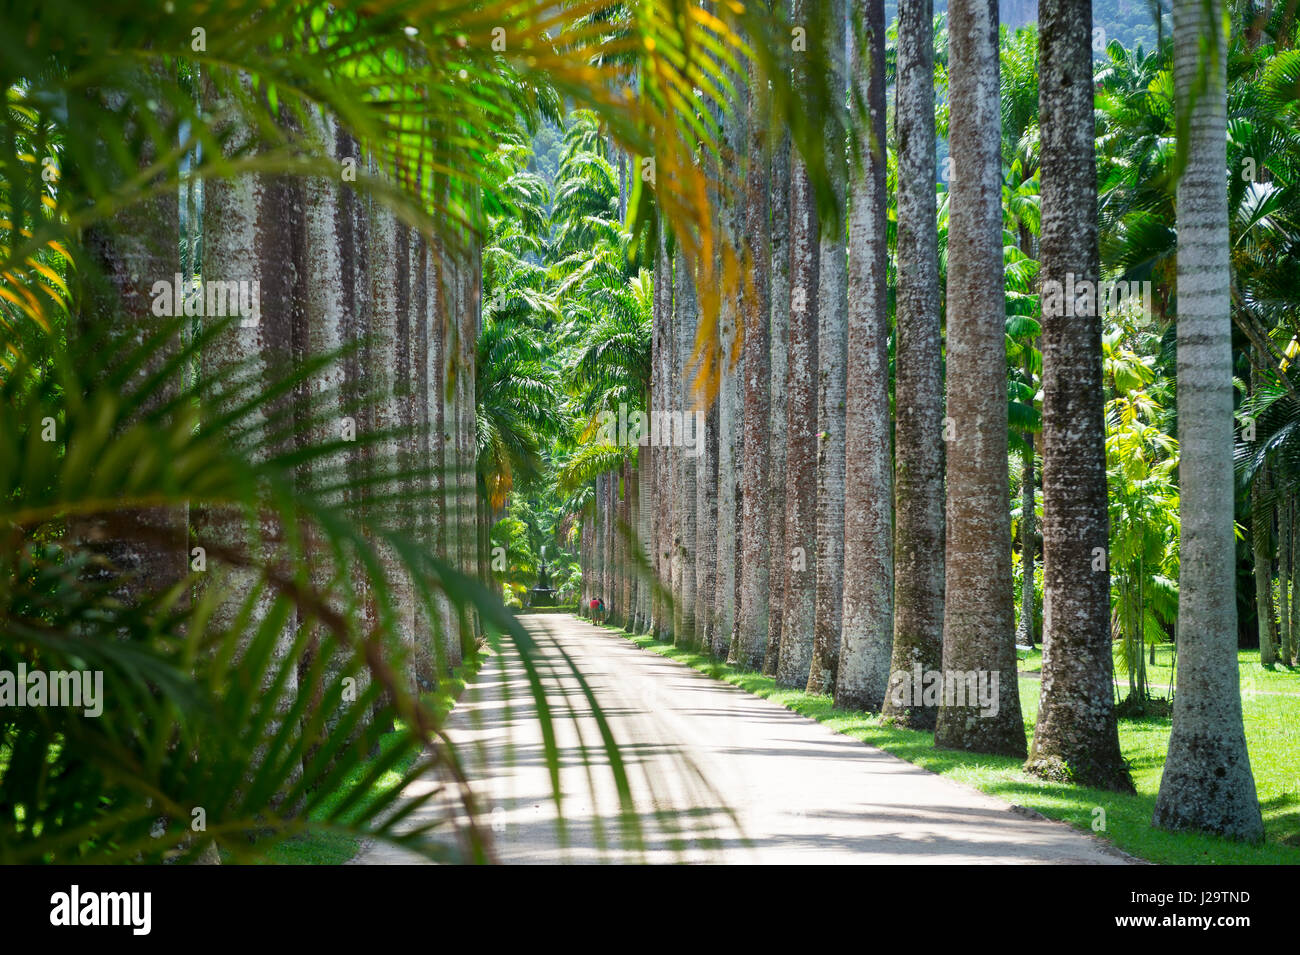 Scenic view of avenue of royal palms framed by palm fronds in the botanic garden in Rio de Janeiro, Brazil - Stock Image